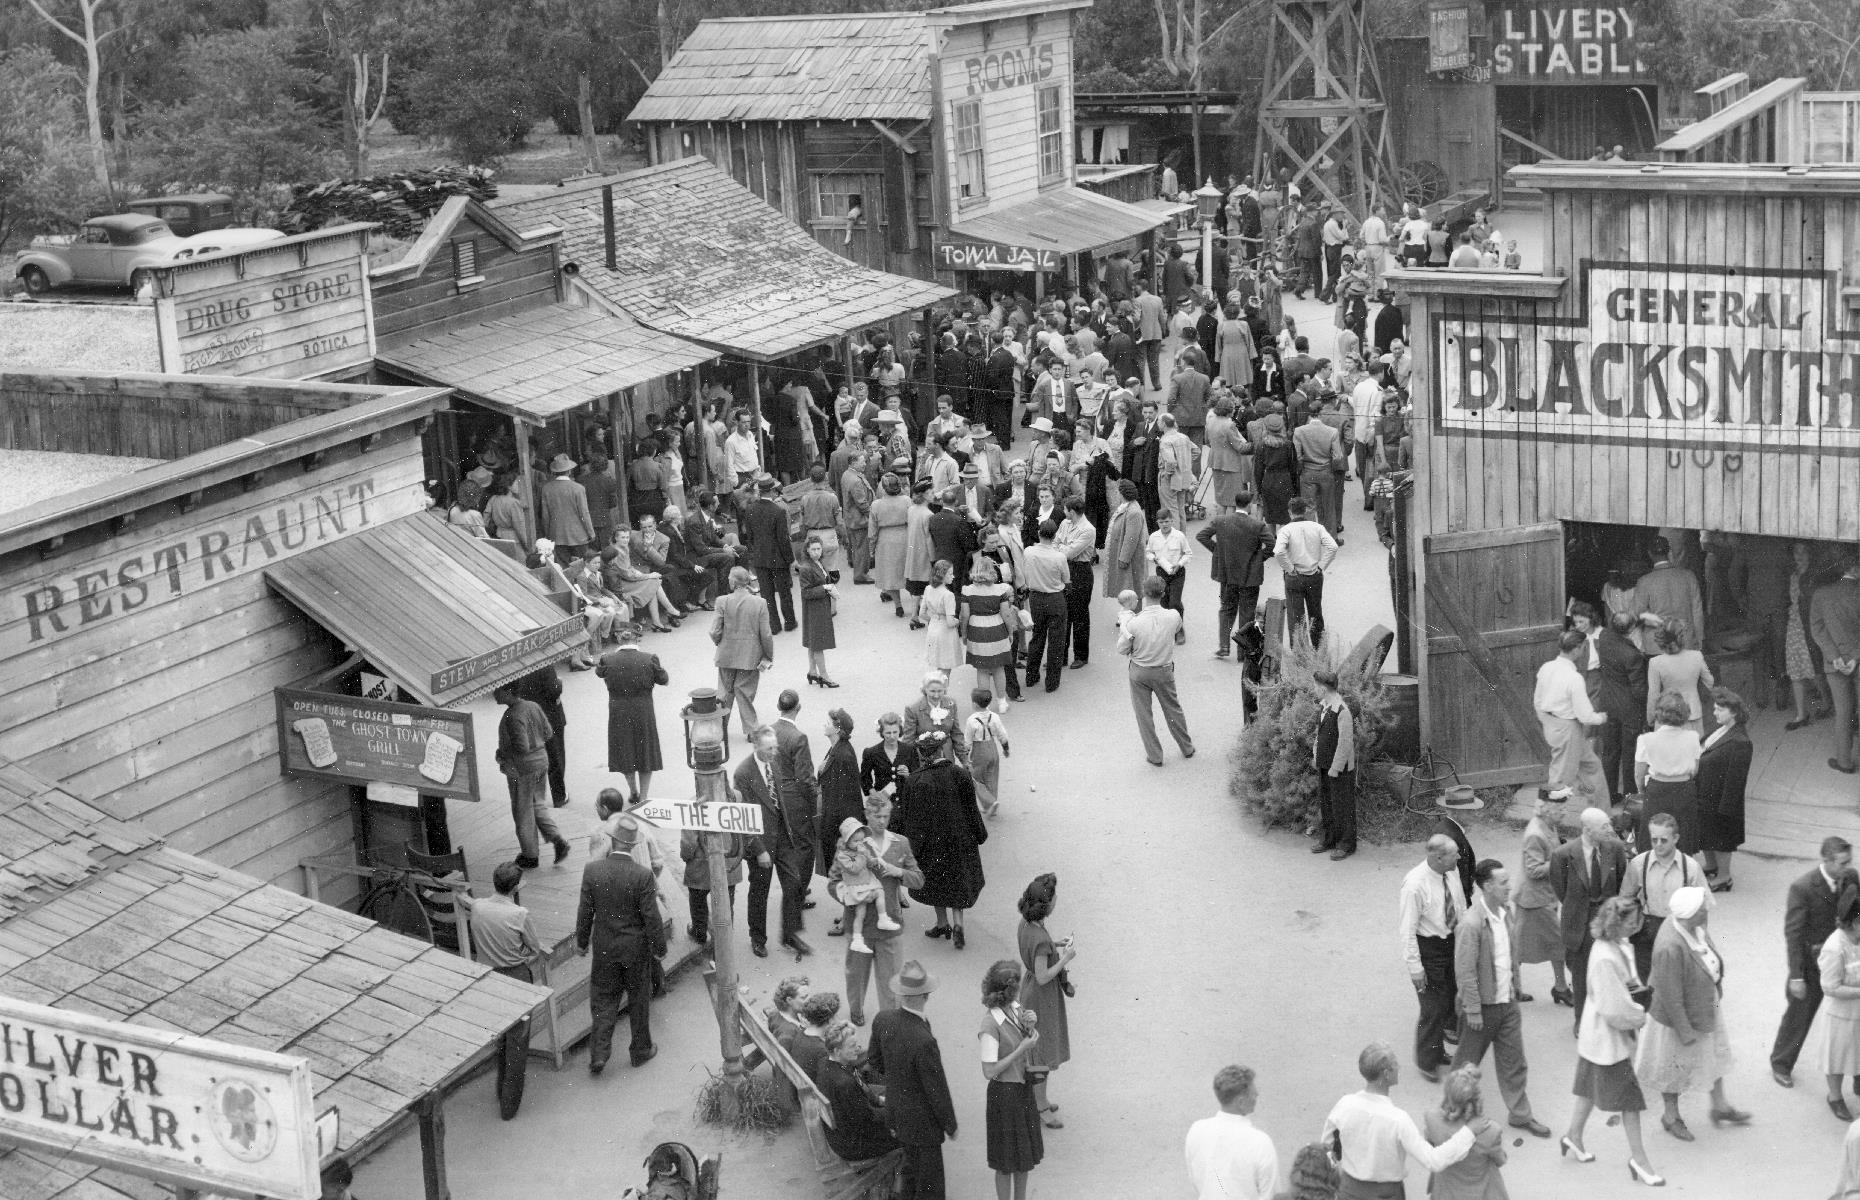 Slide 9 of 35: Inundated with visitors hoping for a taste of Cordelia's chicken dinner, the Knotts decided they needed an extra way to entertain their many guests. In the 1940s, the Ghost Town, a themed land still beloved by park visitors today, was born – it included attractions such as a blacksmith's shop, a town jail and livery stables, and succeeded in pulling in further crowds.